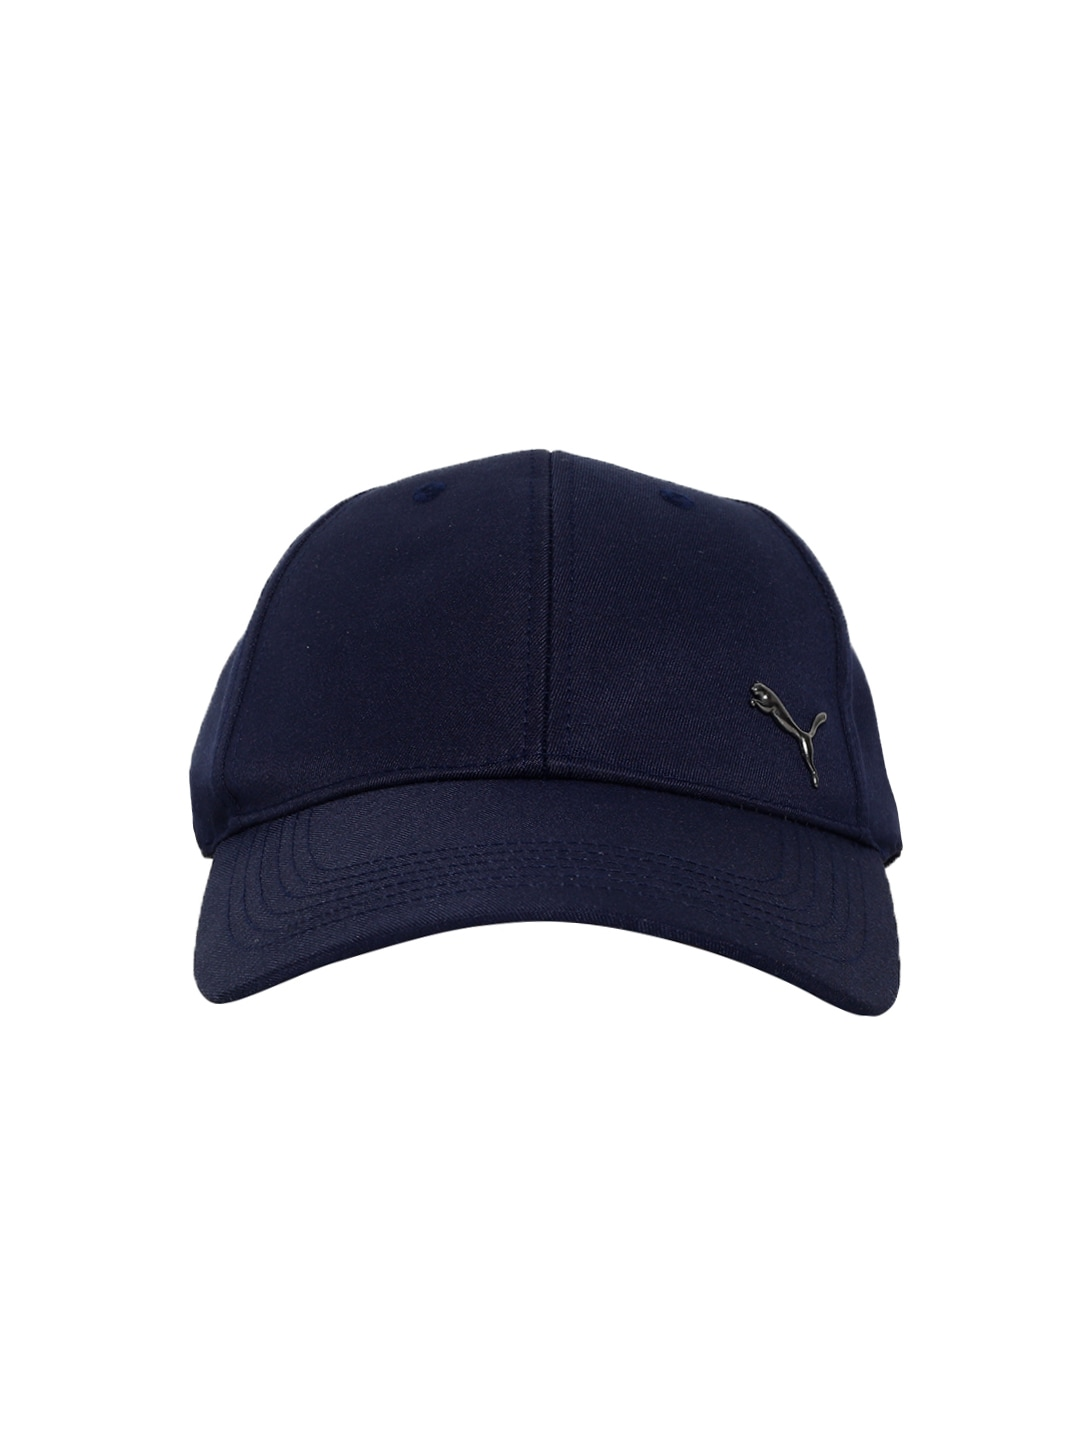 ee1dee2a20f Ny Caps - Buy Ny Caps Online in India